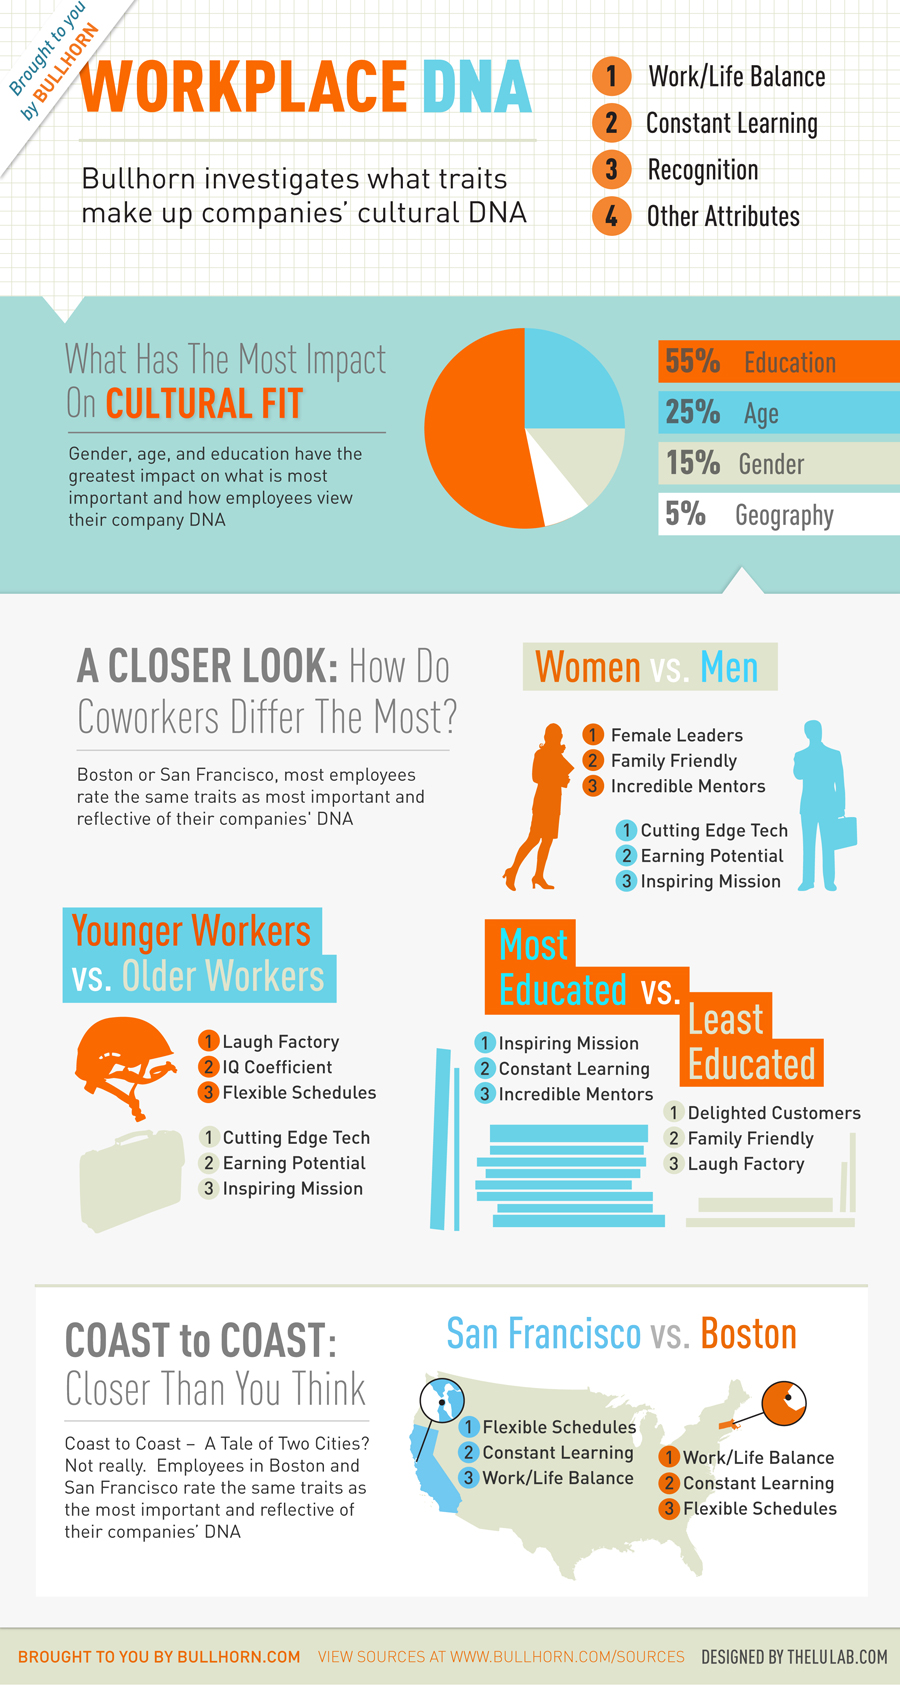 Bullhorn-Workplace-DNA-infographic-900